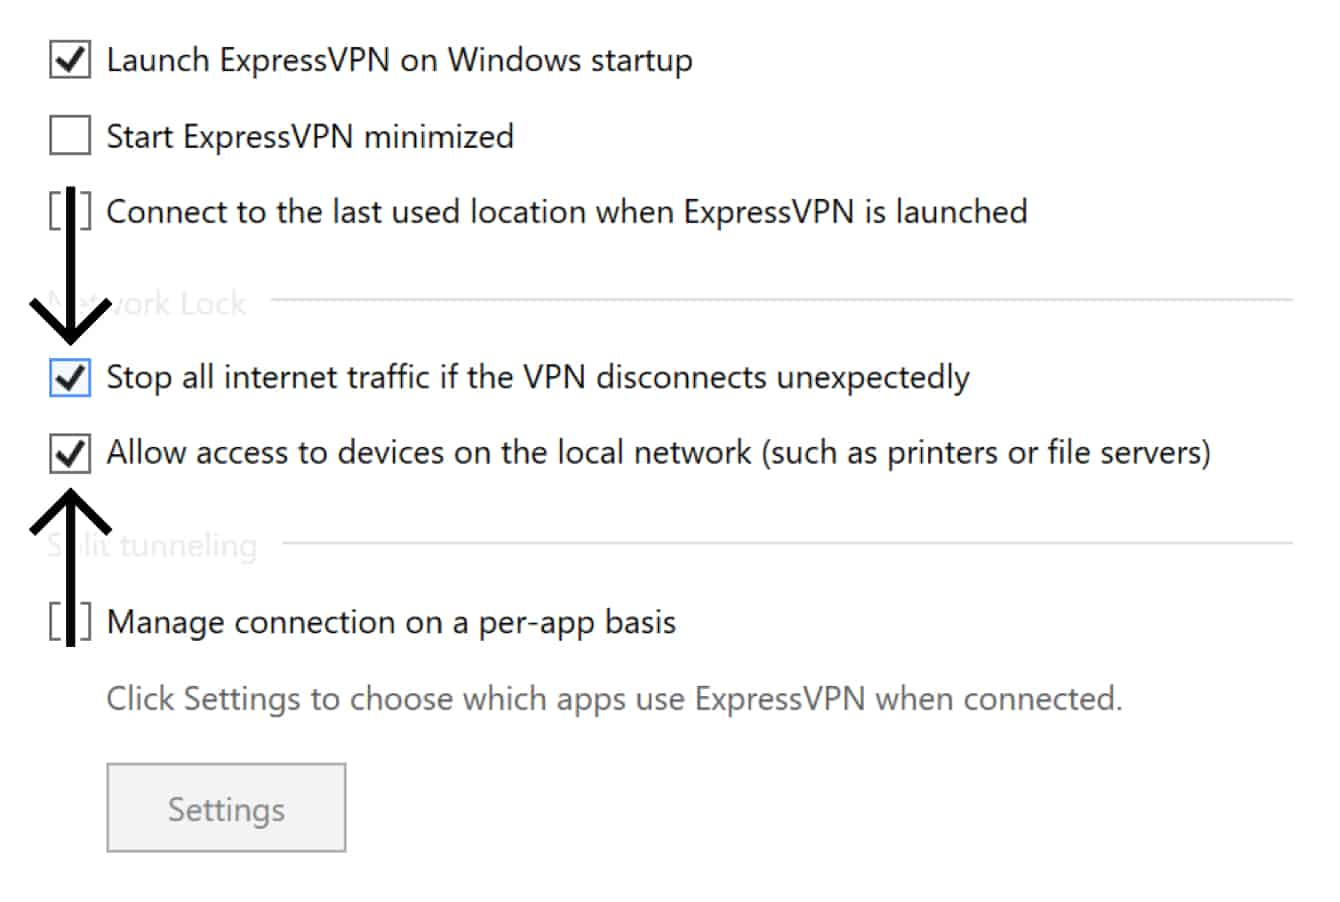 """Check the boxes for """"Stop all internet traffic if the VPN disconnects unexpectedly"""" and """"Allow access to devices on the local network (such as printers or file servers)."""""""